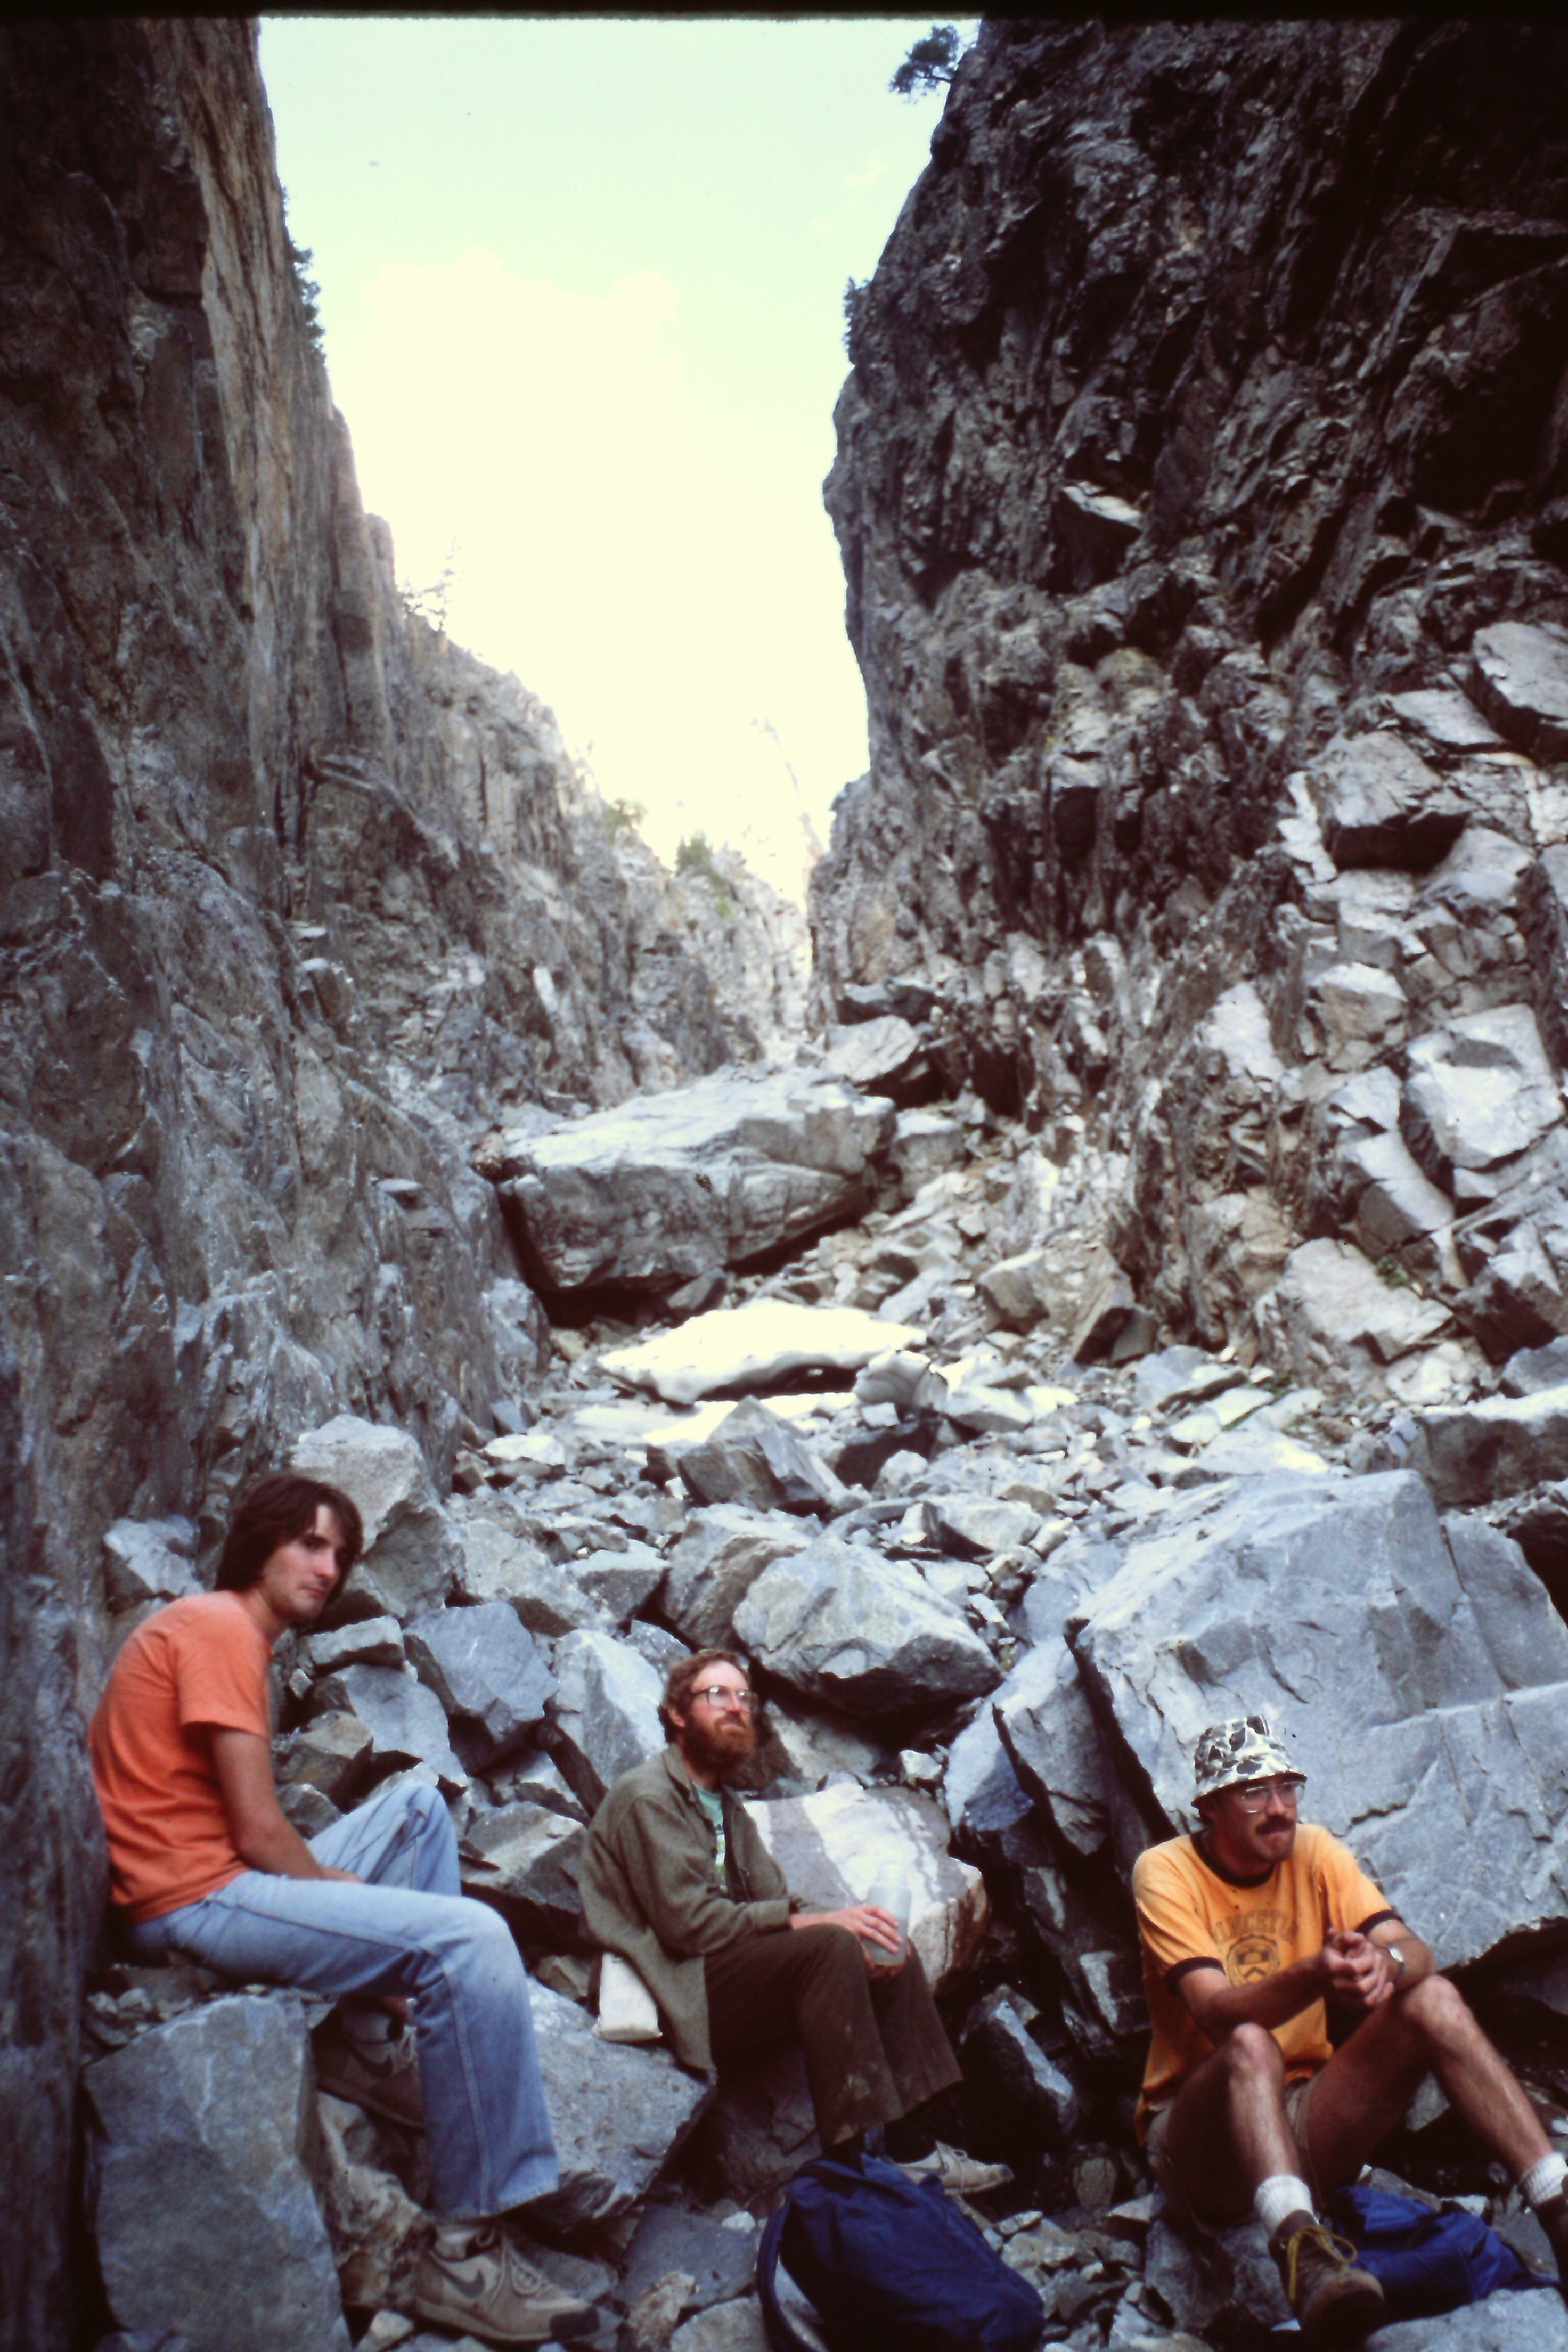 Resting in the descent gully. Steve Grantham Photo